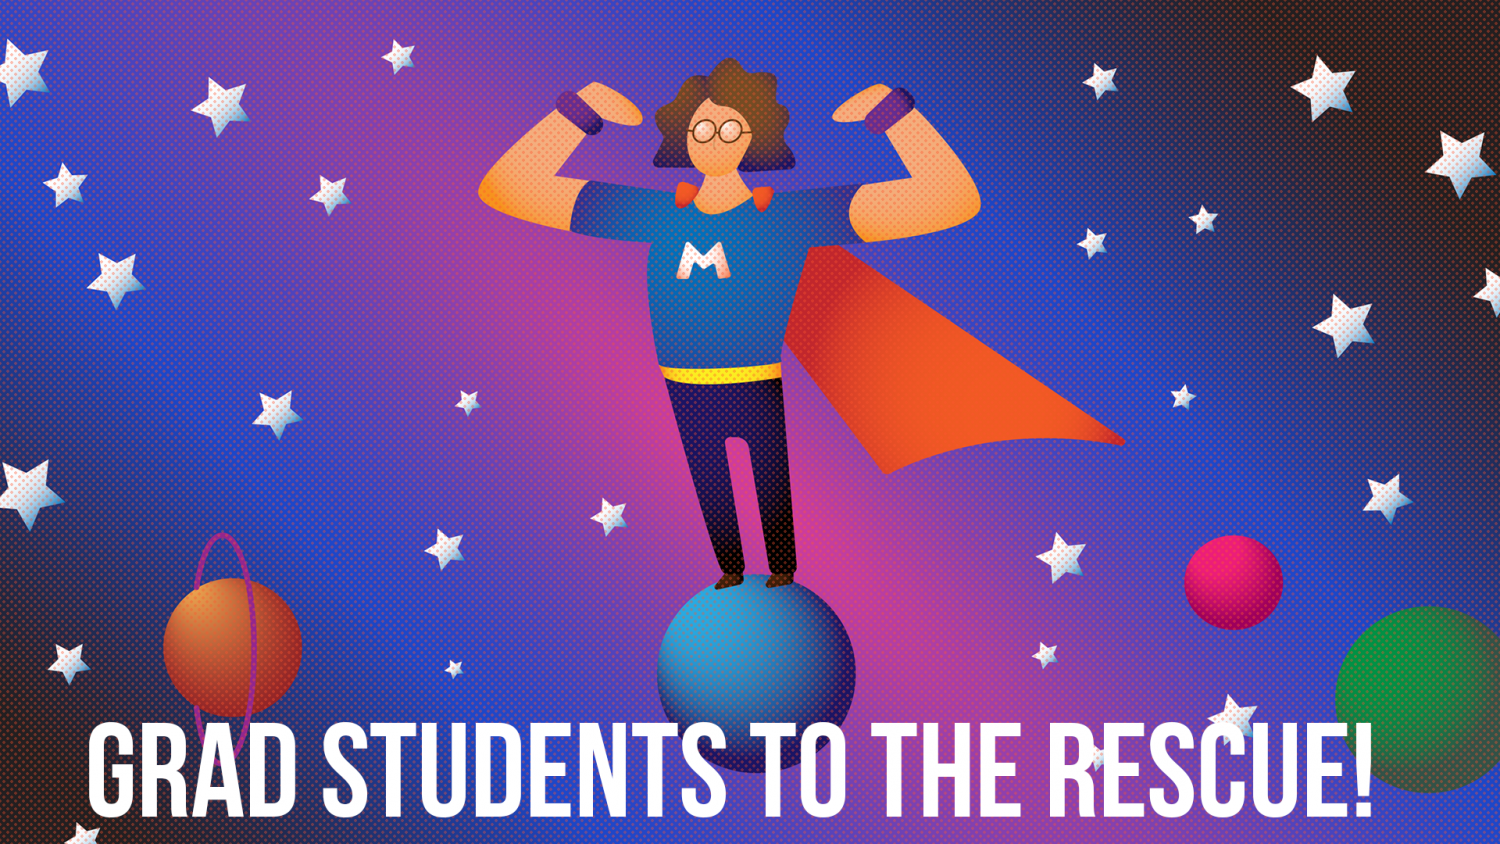 """digital illustration of a male superhero with cape and eye mask flexing muscles as he levitates in space. """"Graduate Students to the Rescue"""" is typed at the bottom of the image."""